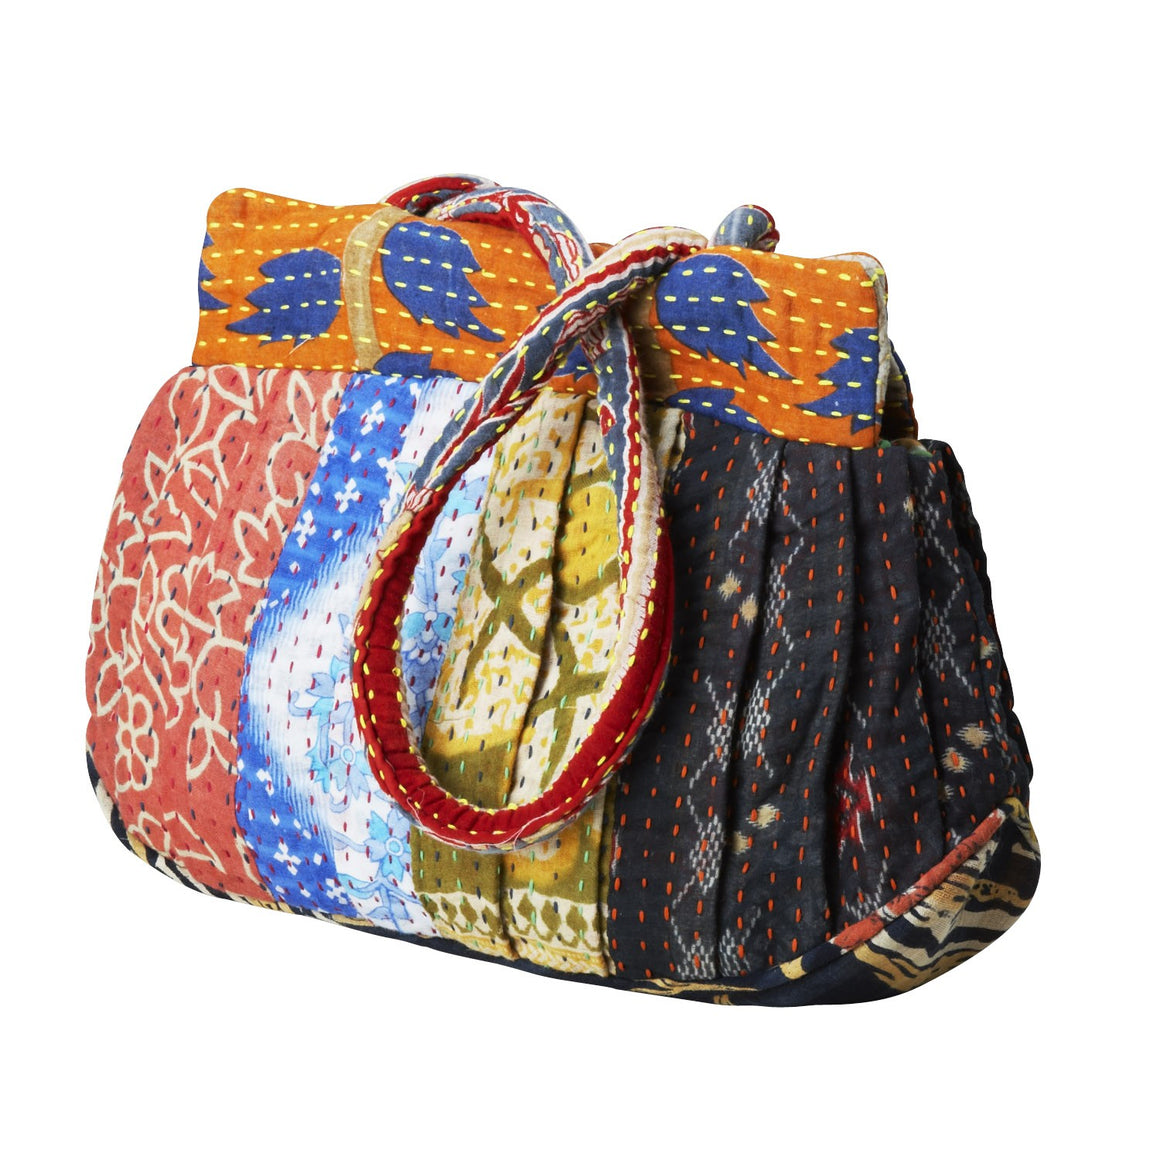 Kantha Stitch Sari Bag